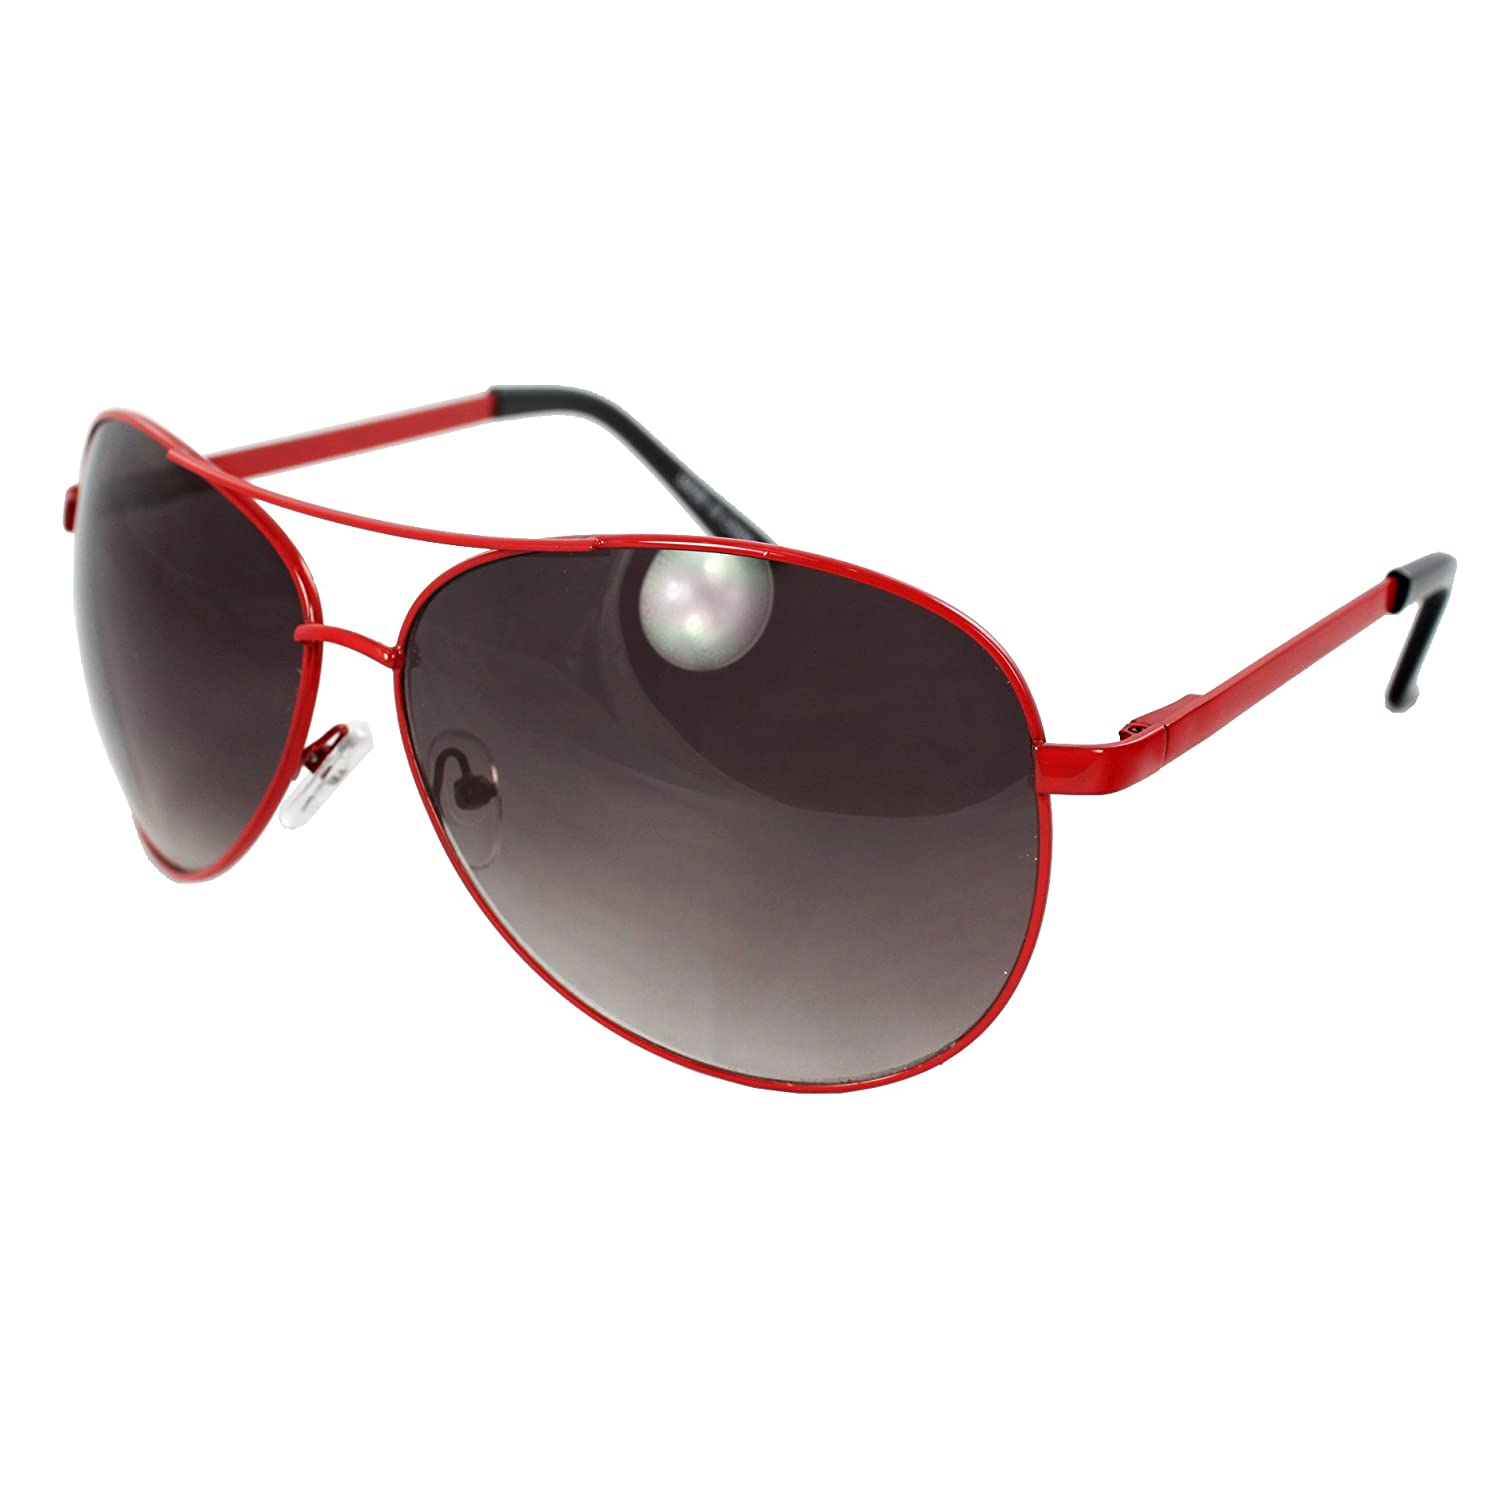 66bb22c1a4 Amazon.com  MLC xflame Eyewear Pilot Fashion Aviator Sunglasses Red Frame  with Purple Black Lenses for Men and Women  Shoes